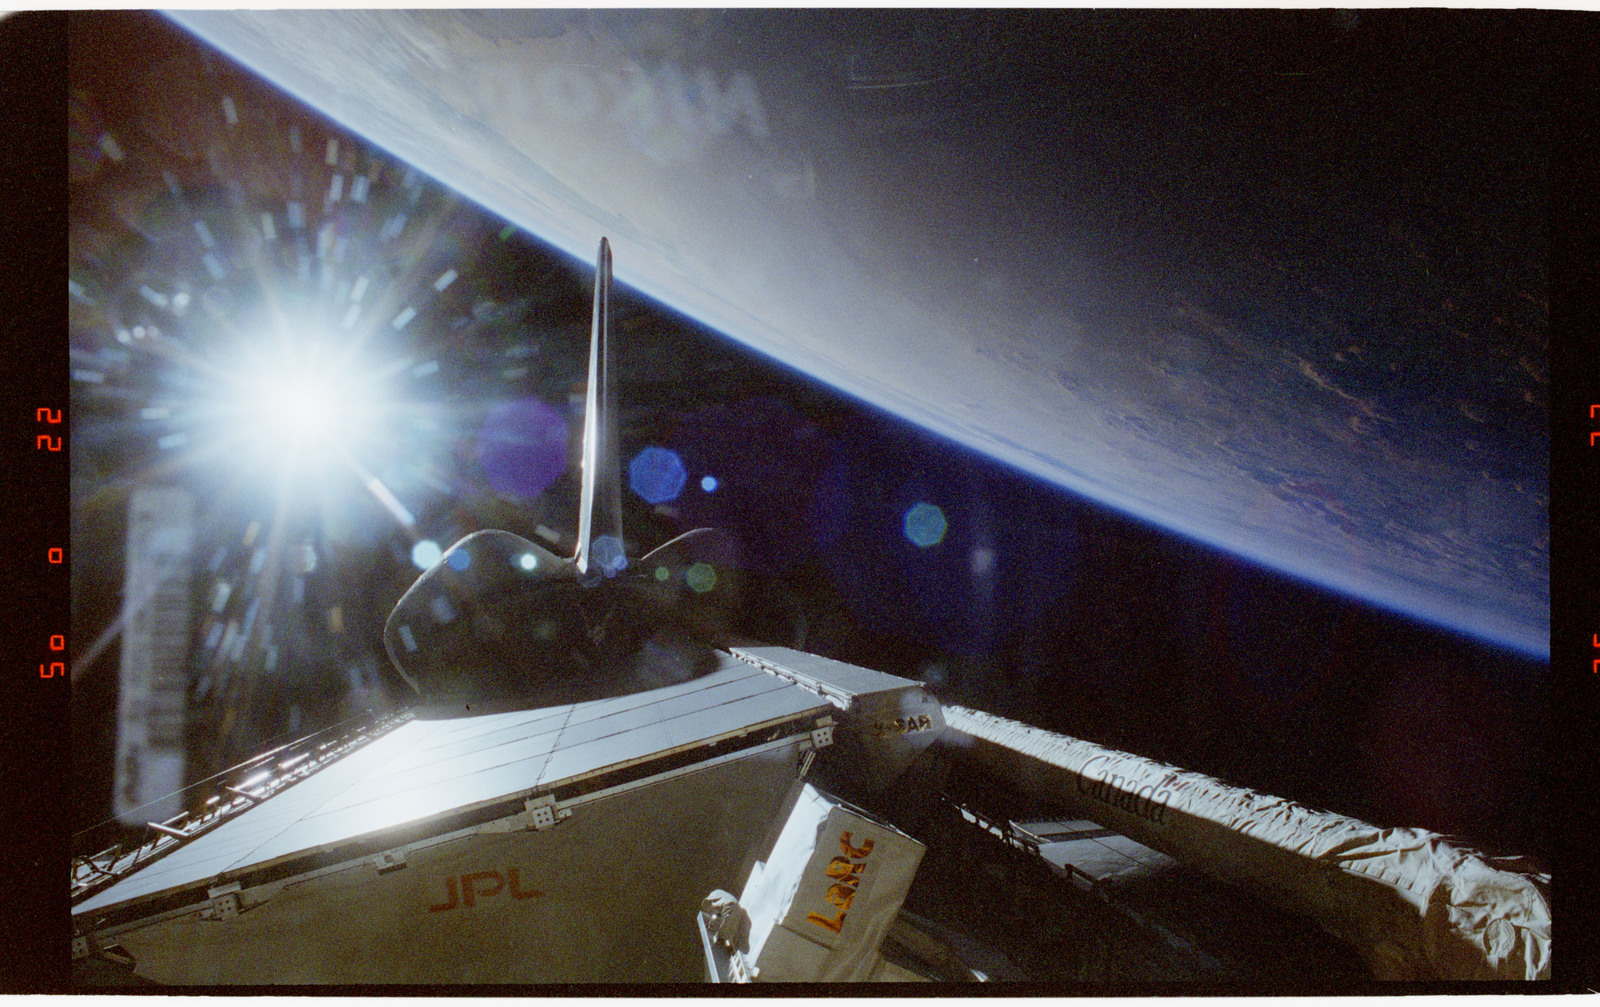 STS068-60-001 - STS-068 - Endeavour's payload bay overlooking the Earth limb during STS-68